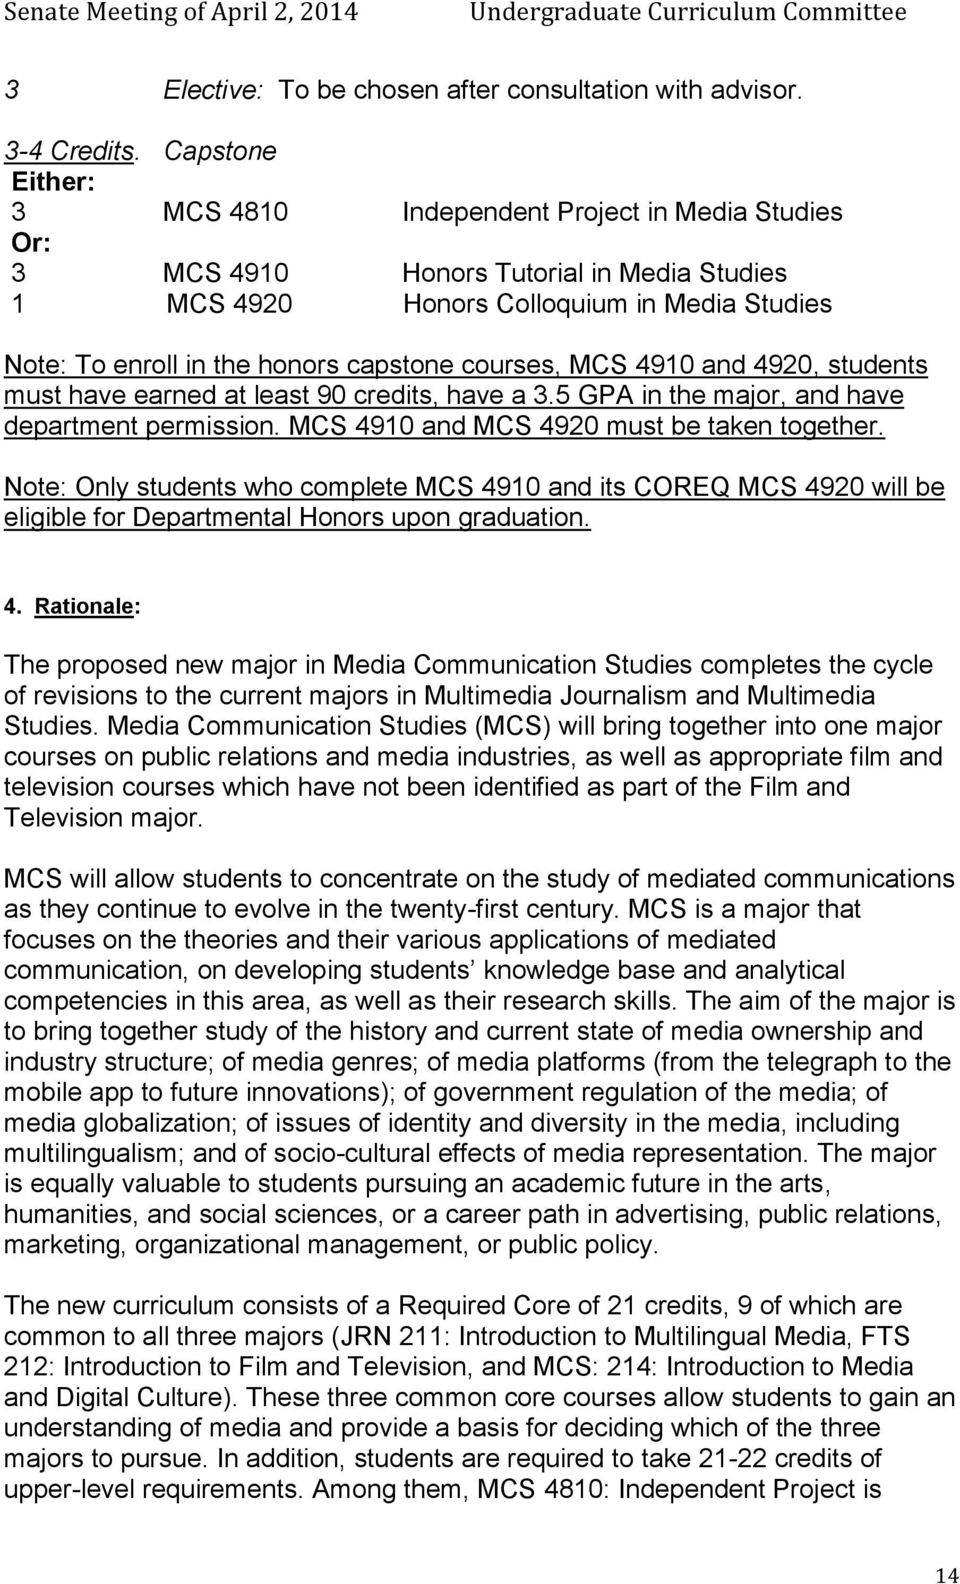 s, MCS 4910 and 4920, students must have earned at least 90 credits, have a 3.5 GPA in the major, and have department permission. MCS 4910 and MCS 4920 must be taken together.